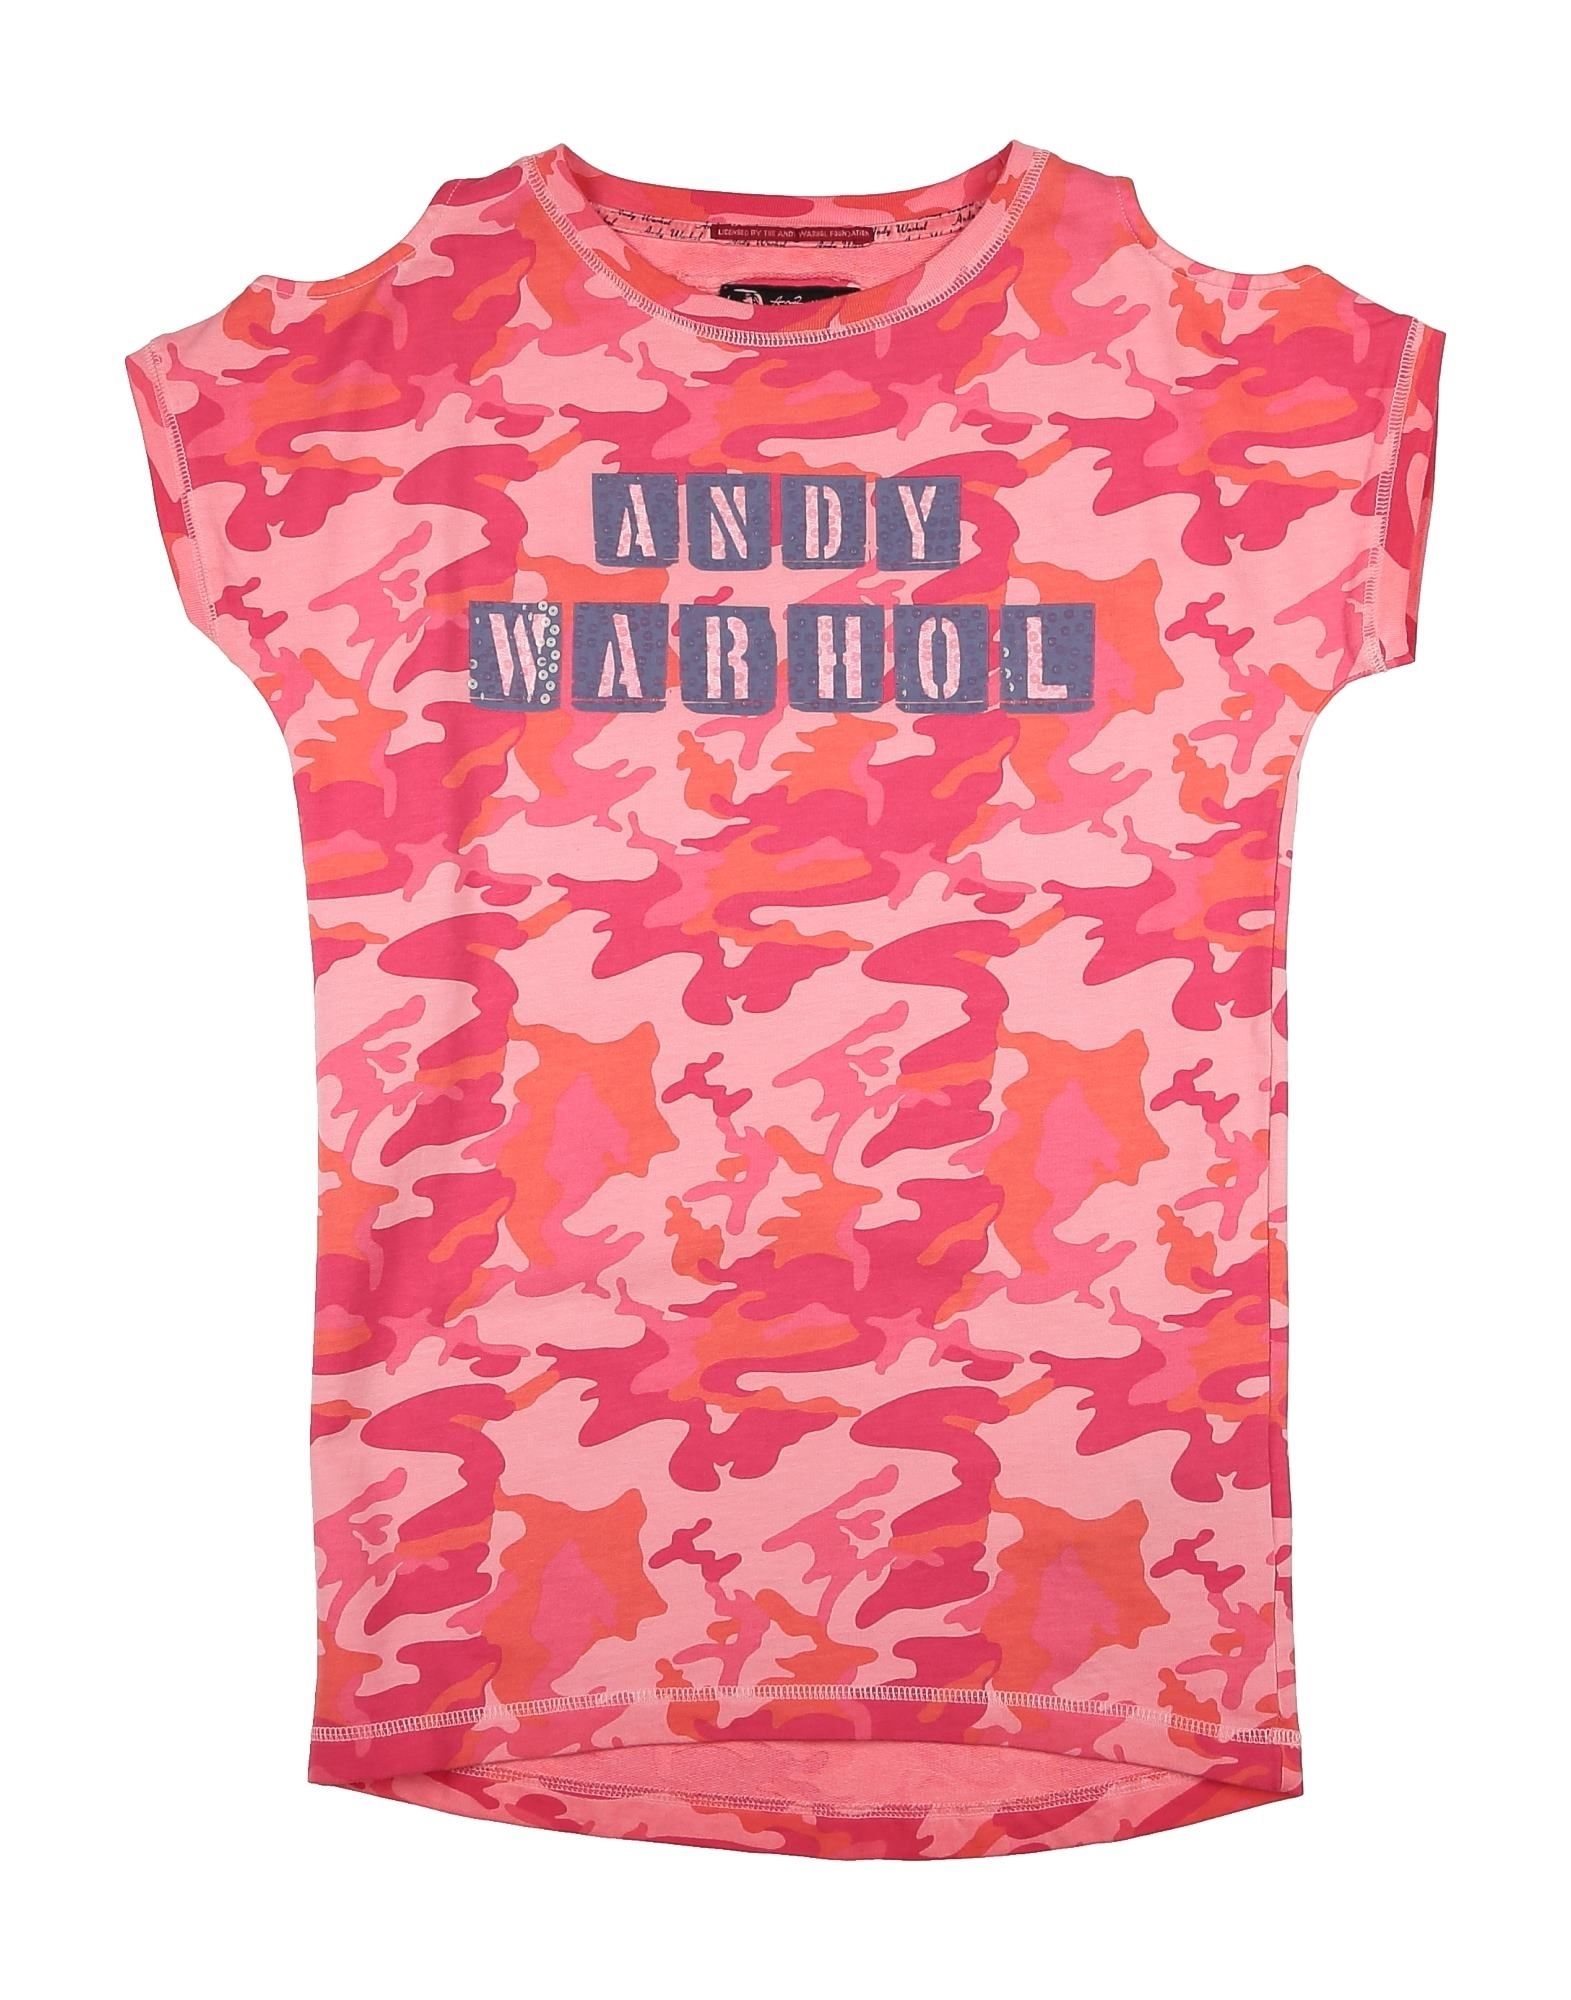 Andy Warhol By Pepe Jeans Kids' T-shirts In Coral